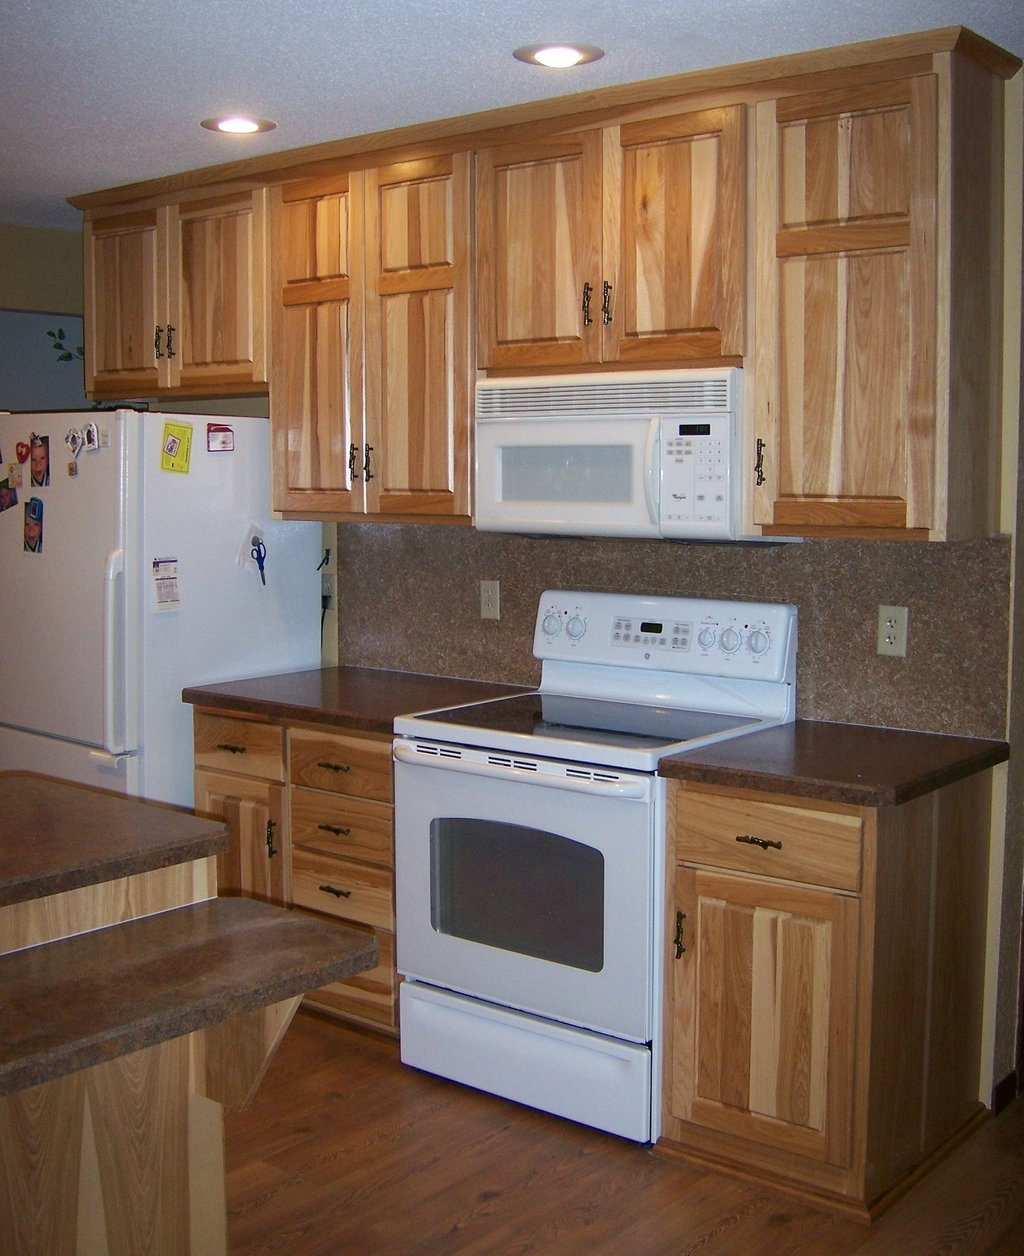 Hickory Kitchen Cabinet Black Appliance Wow Blog Installing Hickory Kitchen Cabinets